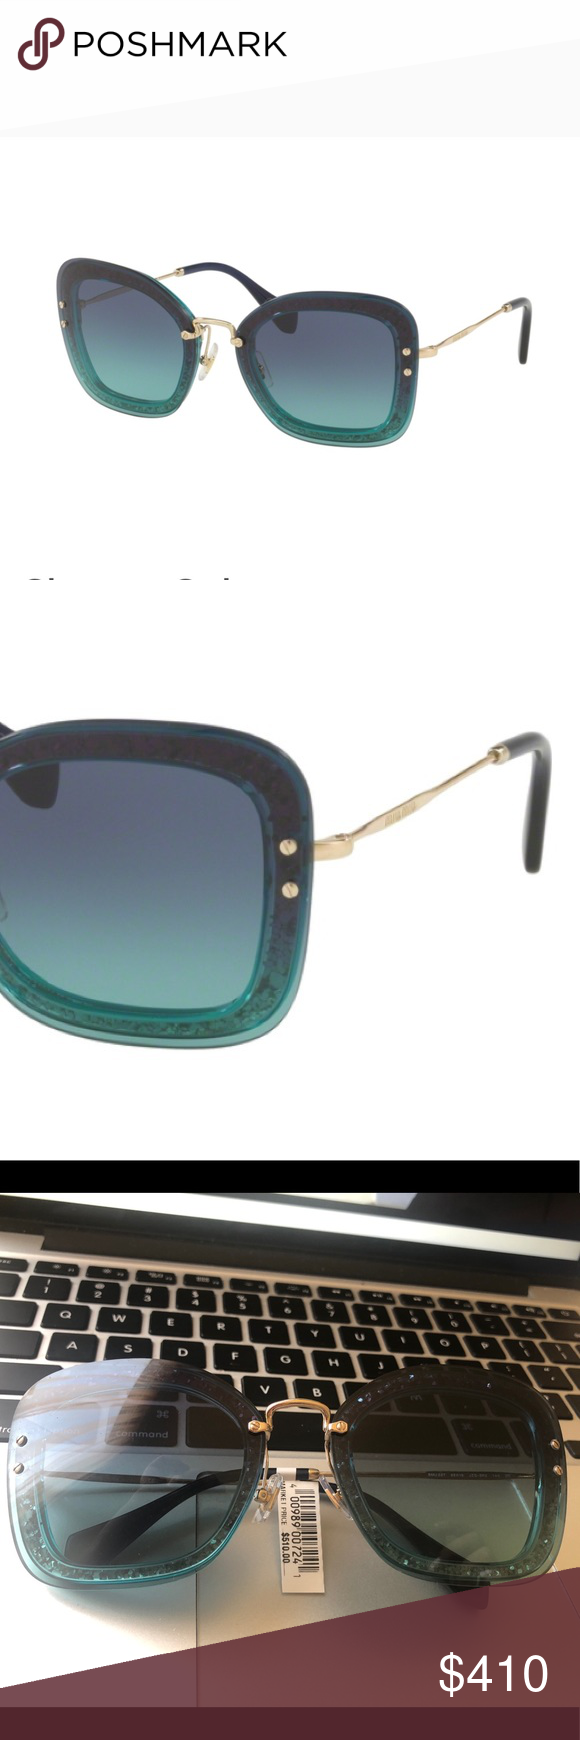 6907b1eb103f Authentic Miu Miu Emerald Green Glitter Sunglasses 100% Authentic Brand new  As pictures no case Frame Color  JZG5R2 Transp Emerald Green   Glitter Lens  ...